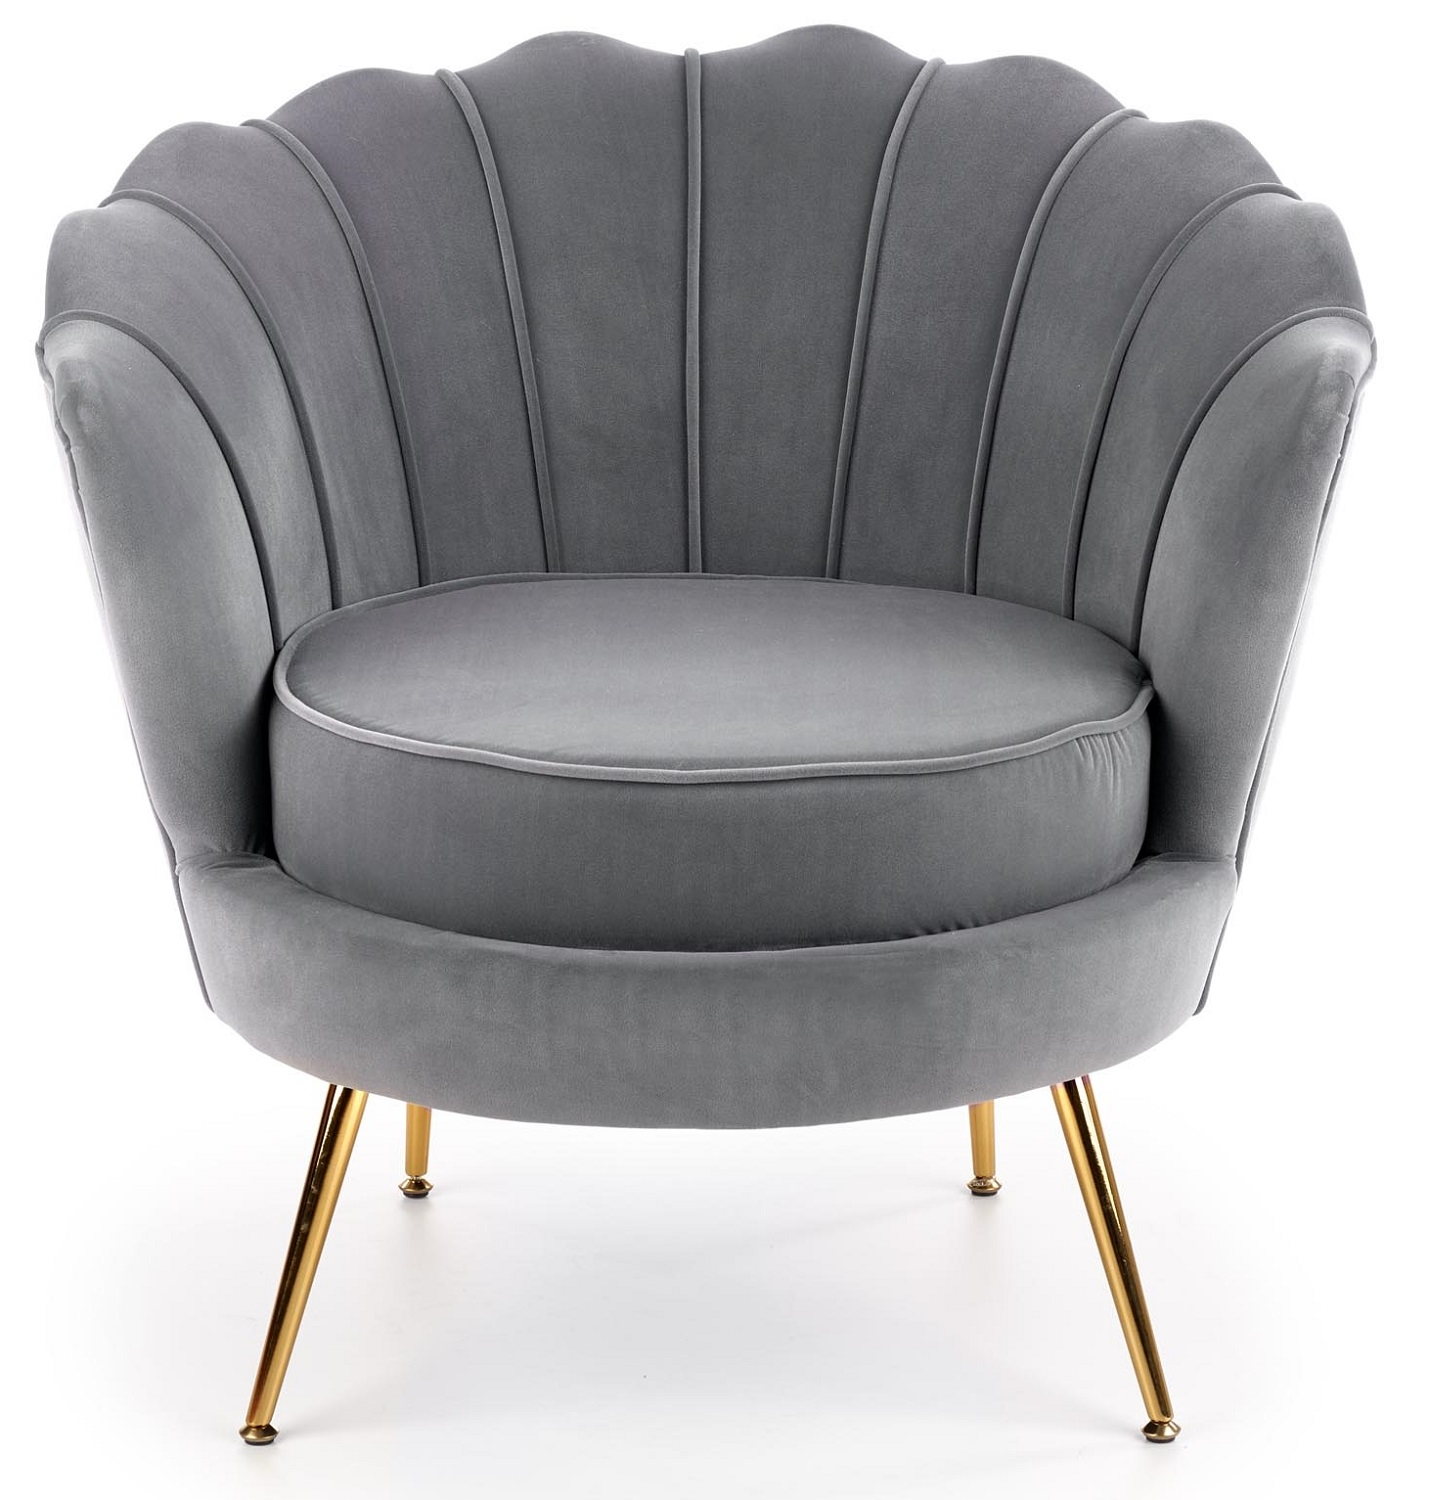 Fauteuil Amorinito 83 cm breed in grijs | Home Style